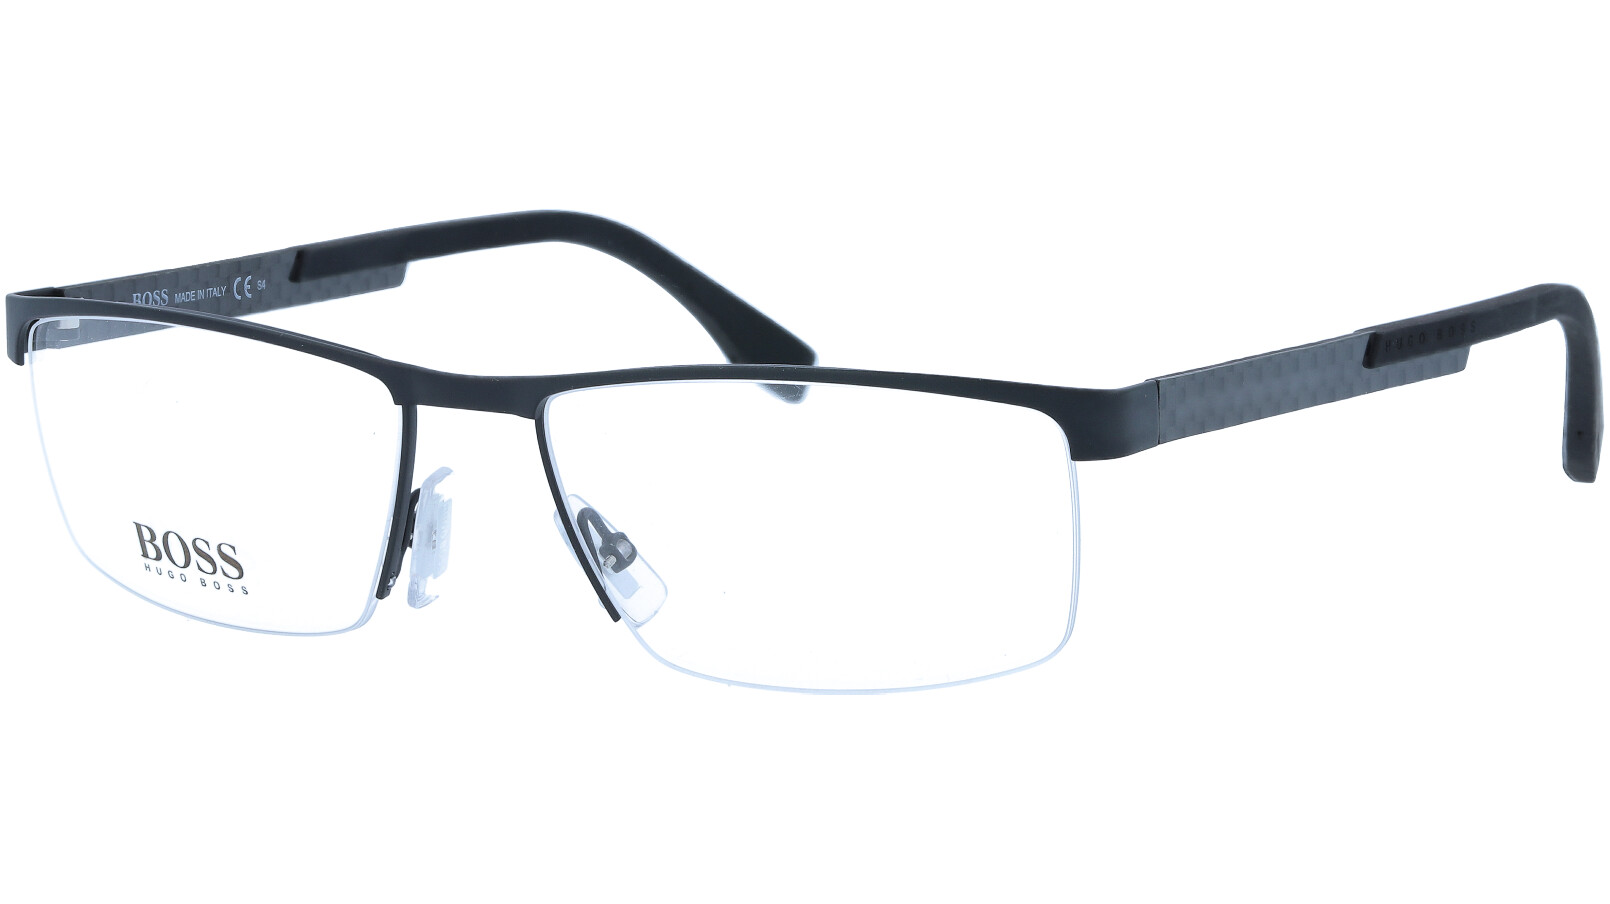 HUGO BOSS BOSS0734 KCQ 56 MTBLK Glasses